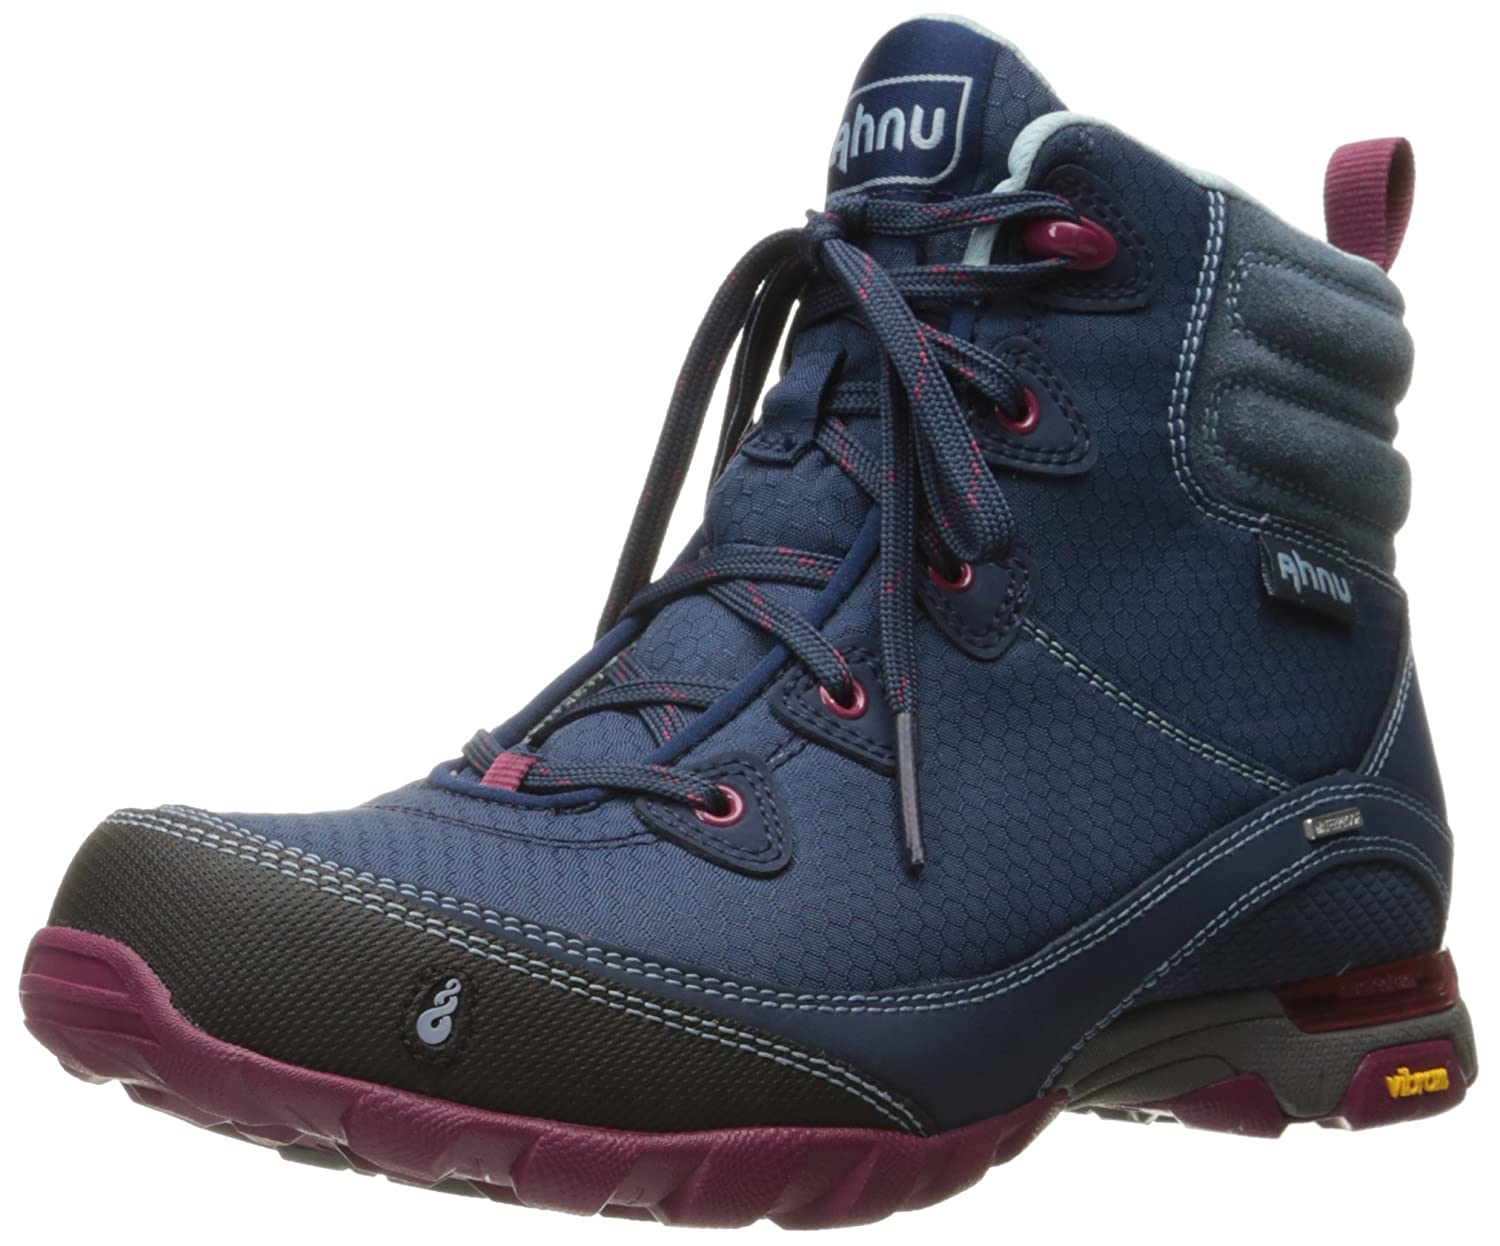 Camping & Hiking Efficient Childs Walking Boots